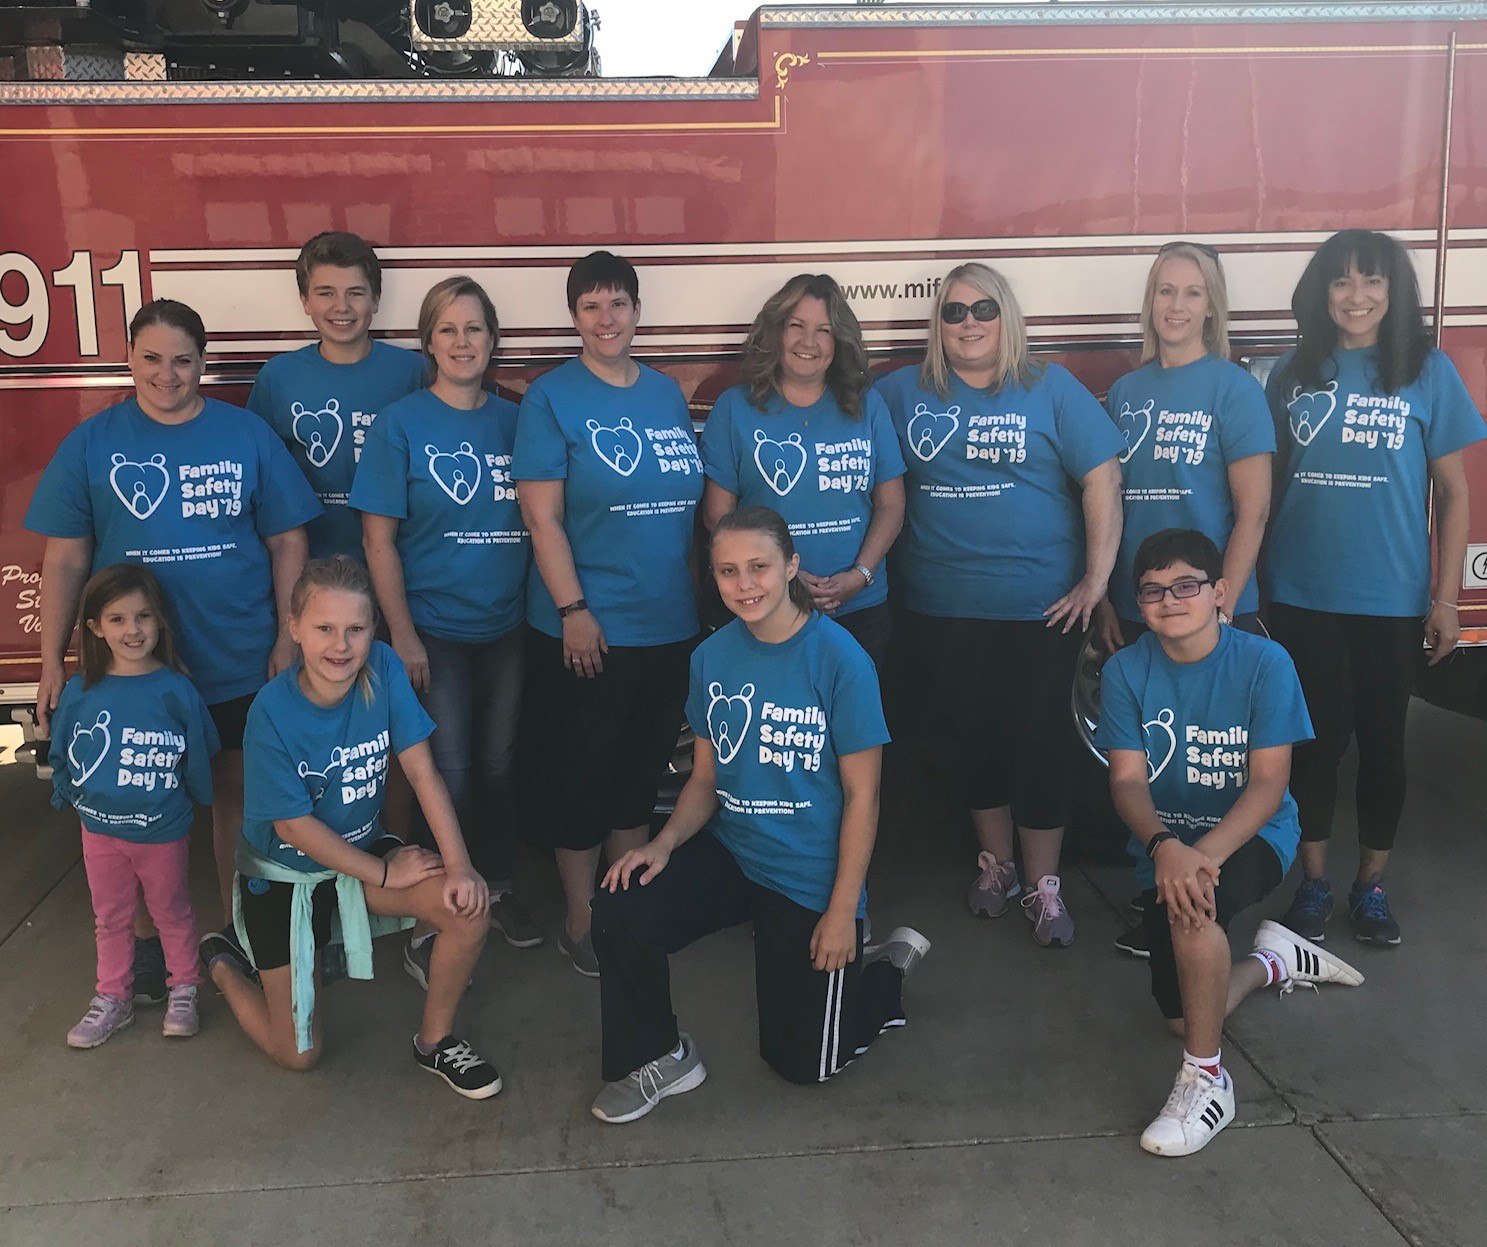 Family Day - a partnership with the local fire department to teach kids and families the importance of safety and having an evacuation plan in the event of an emergency.